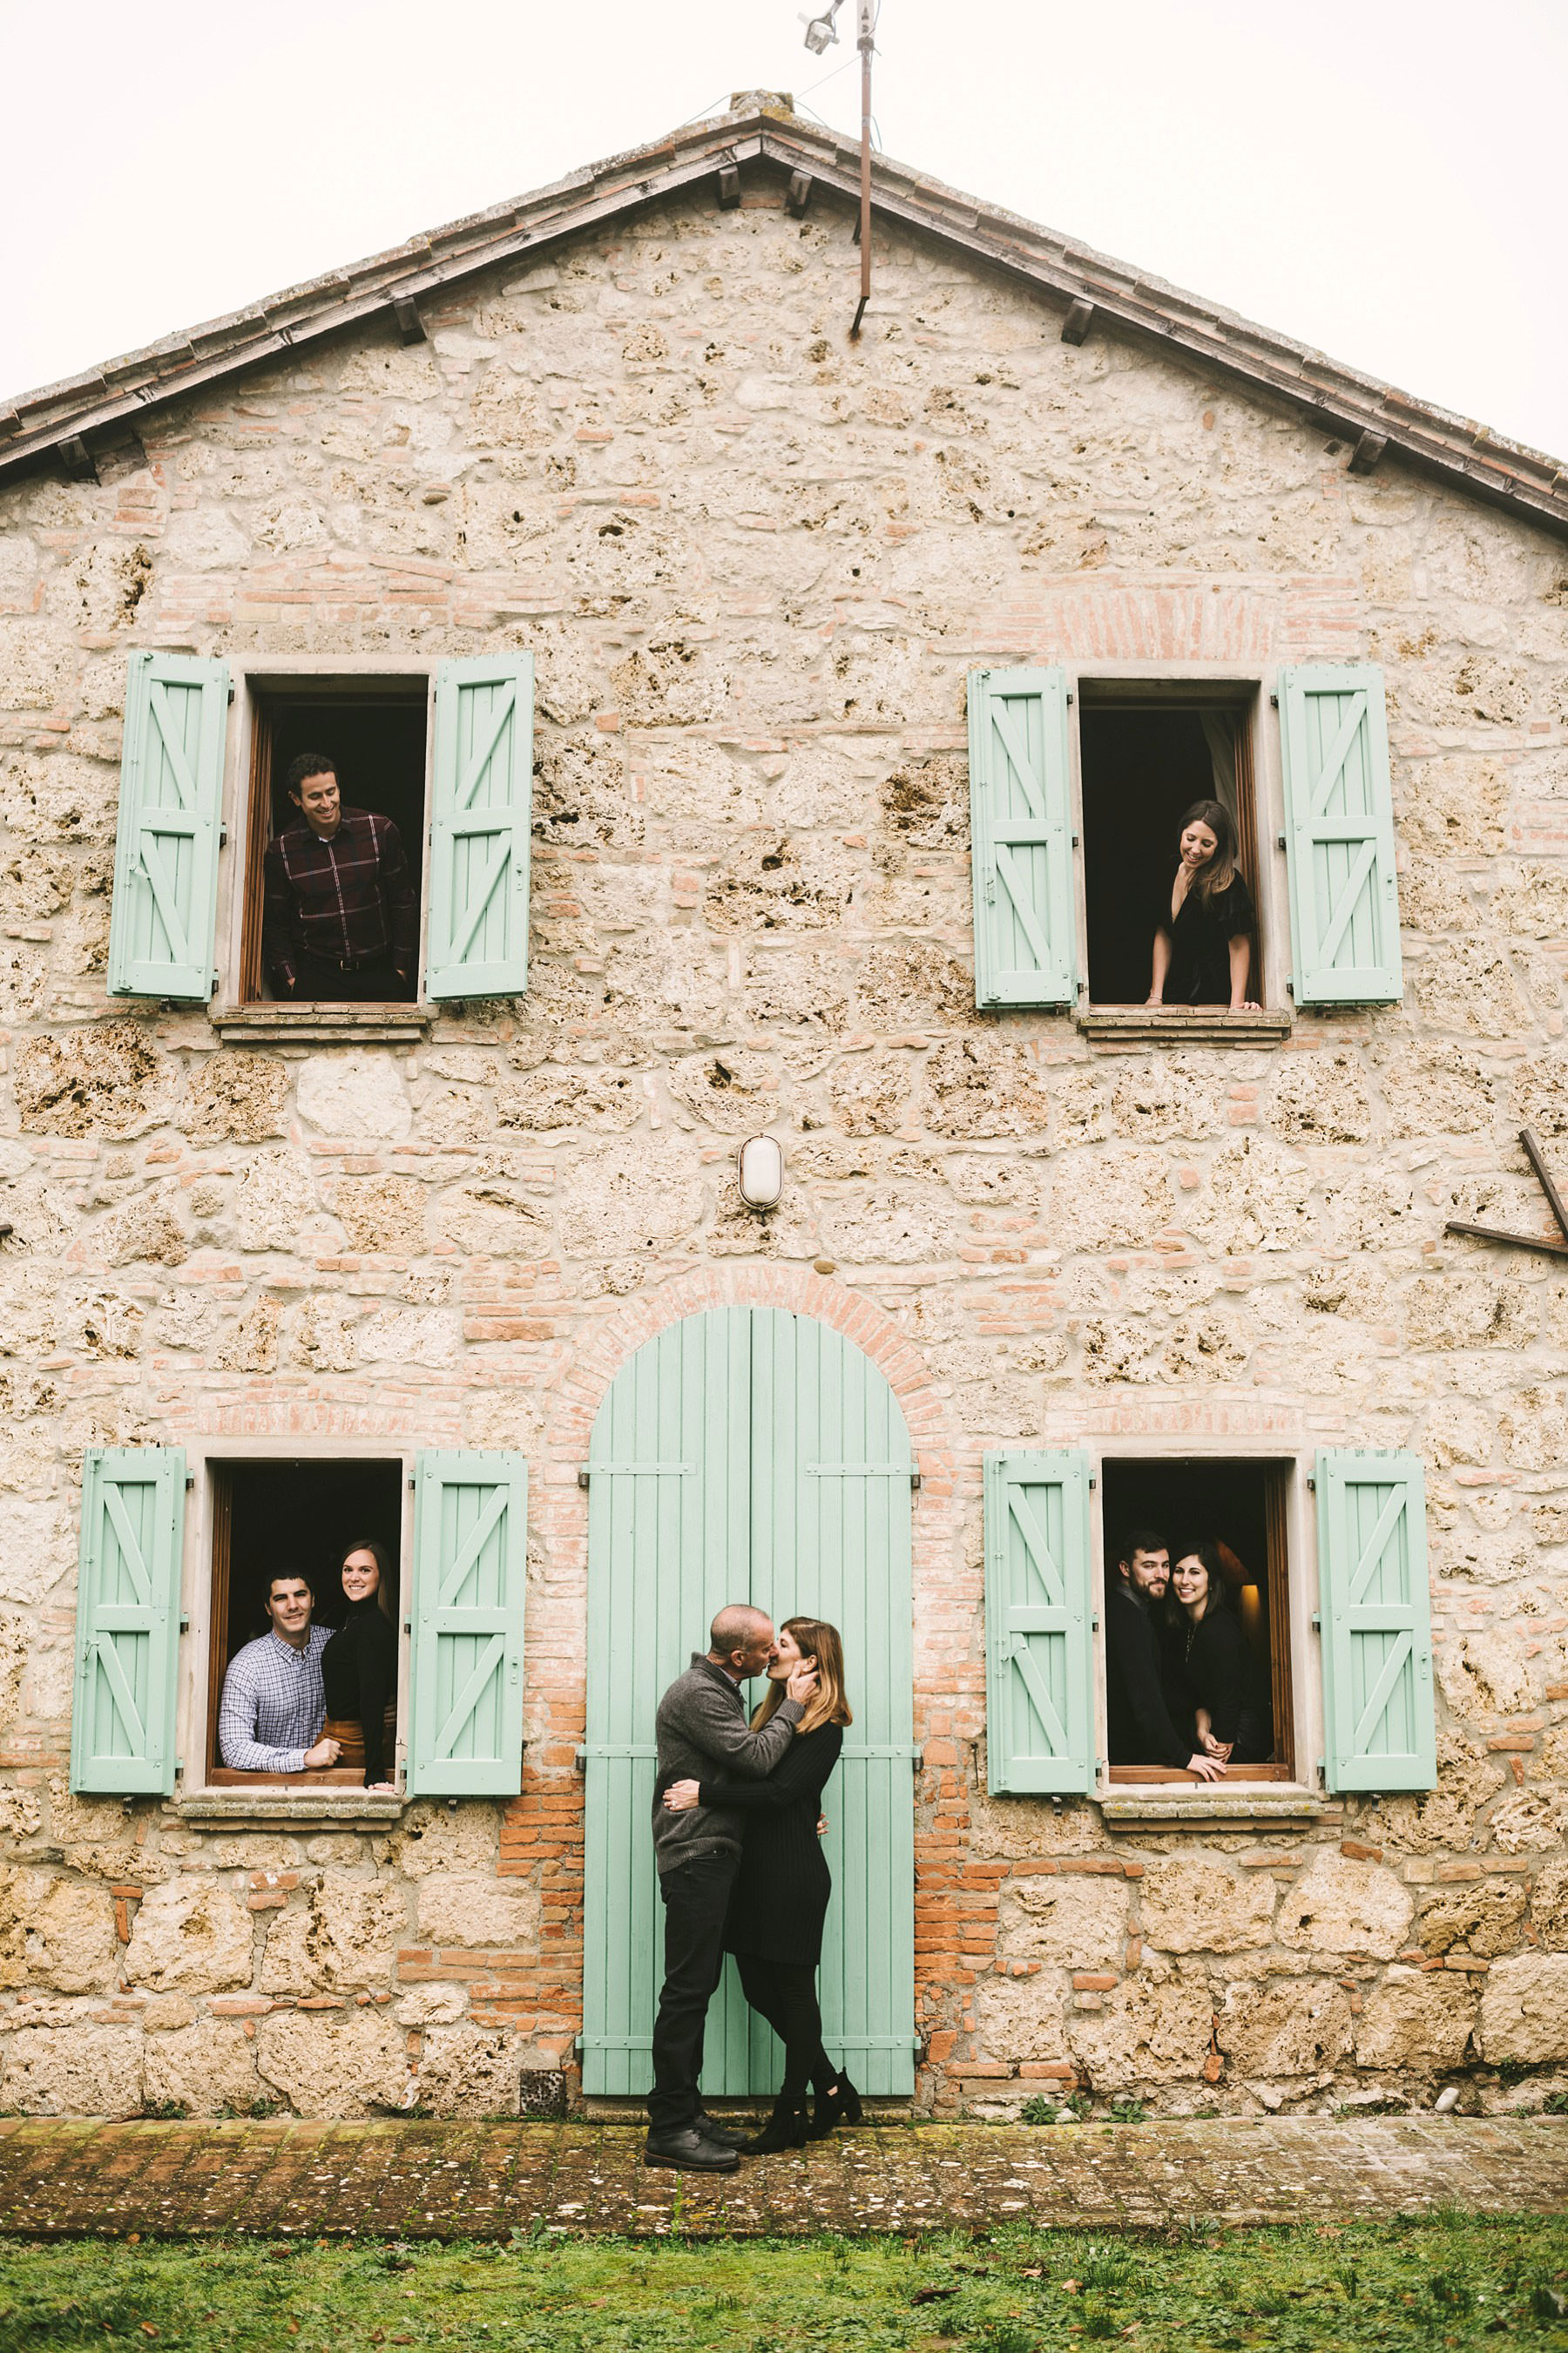 Beautiful shoot during winter family reunion photo shoot in Tuscany countryside